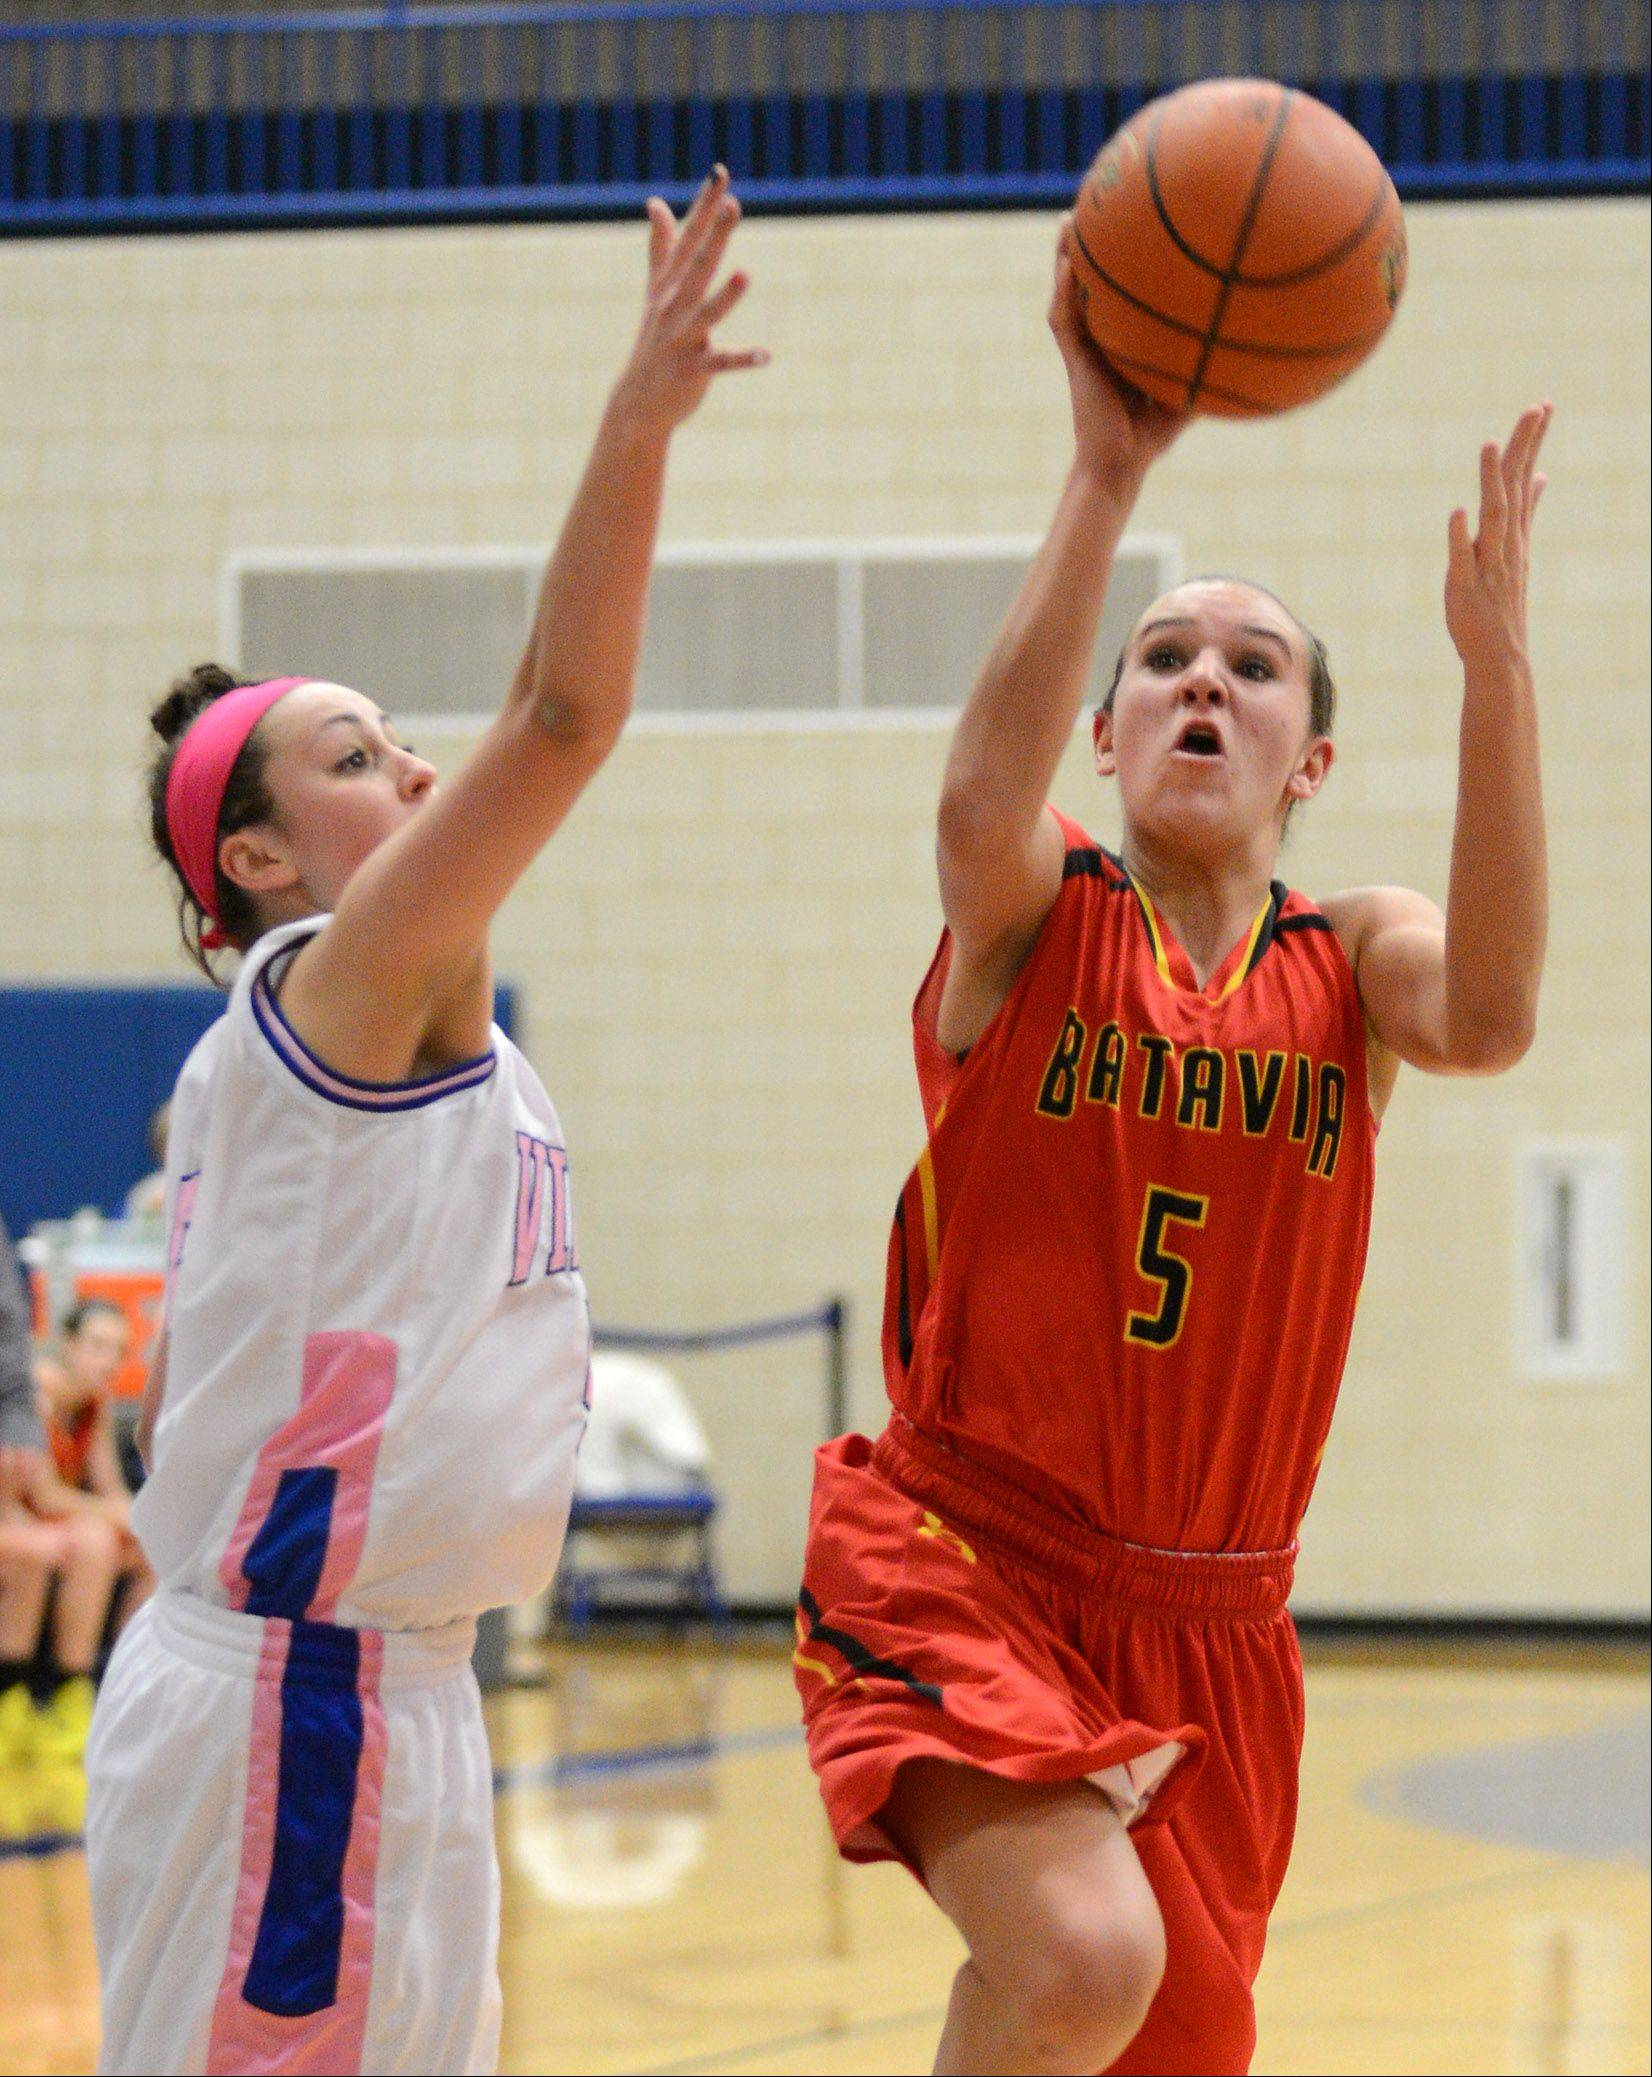 Batavia's Liza Fruendt (5) drives and scores during Friday's game in Geneva.